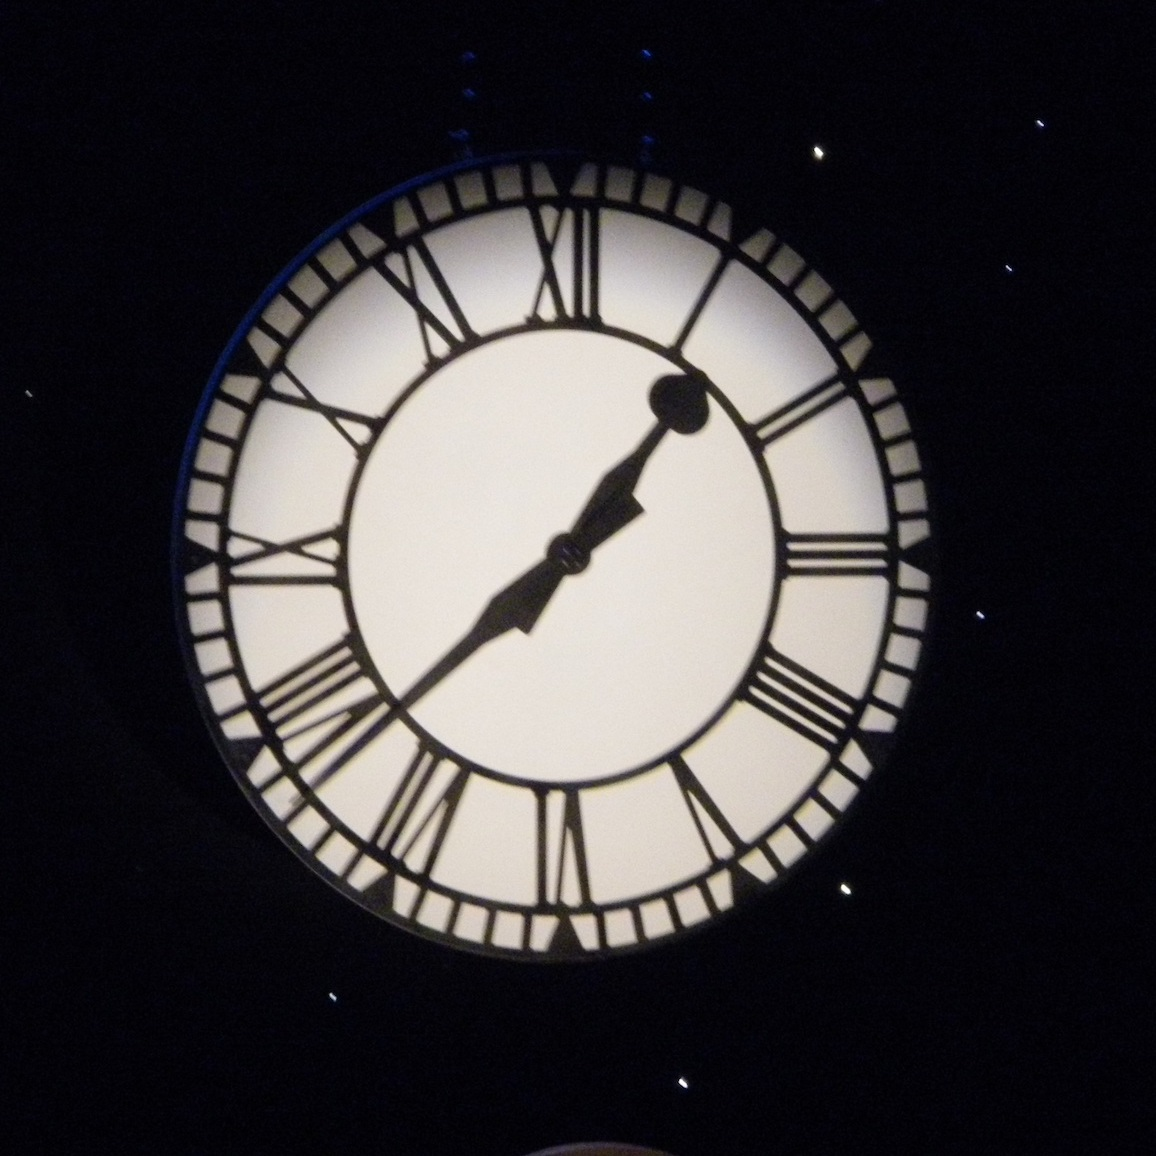 Clock Face - We've made a few versions of this clock for Cinderella's and other shows. The largest we made was 2.4m in diameter.